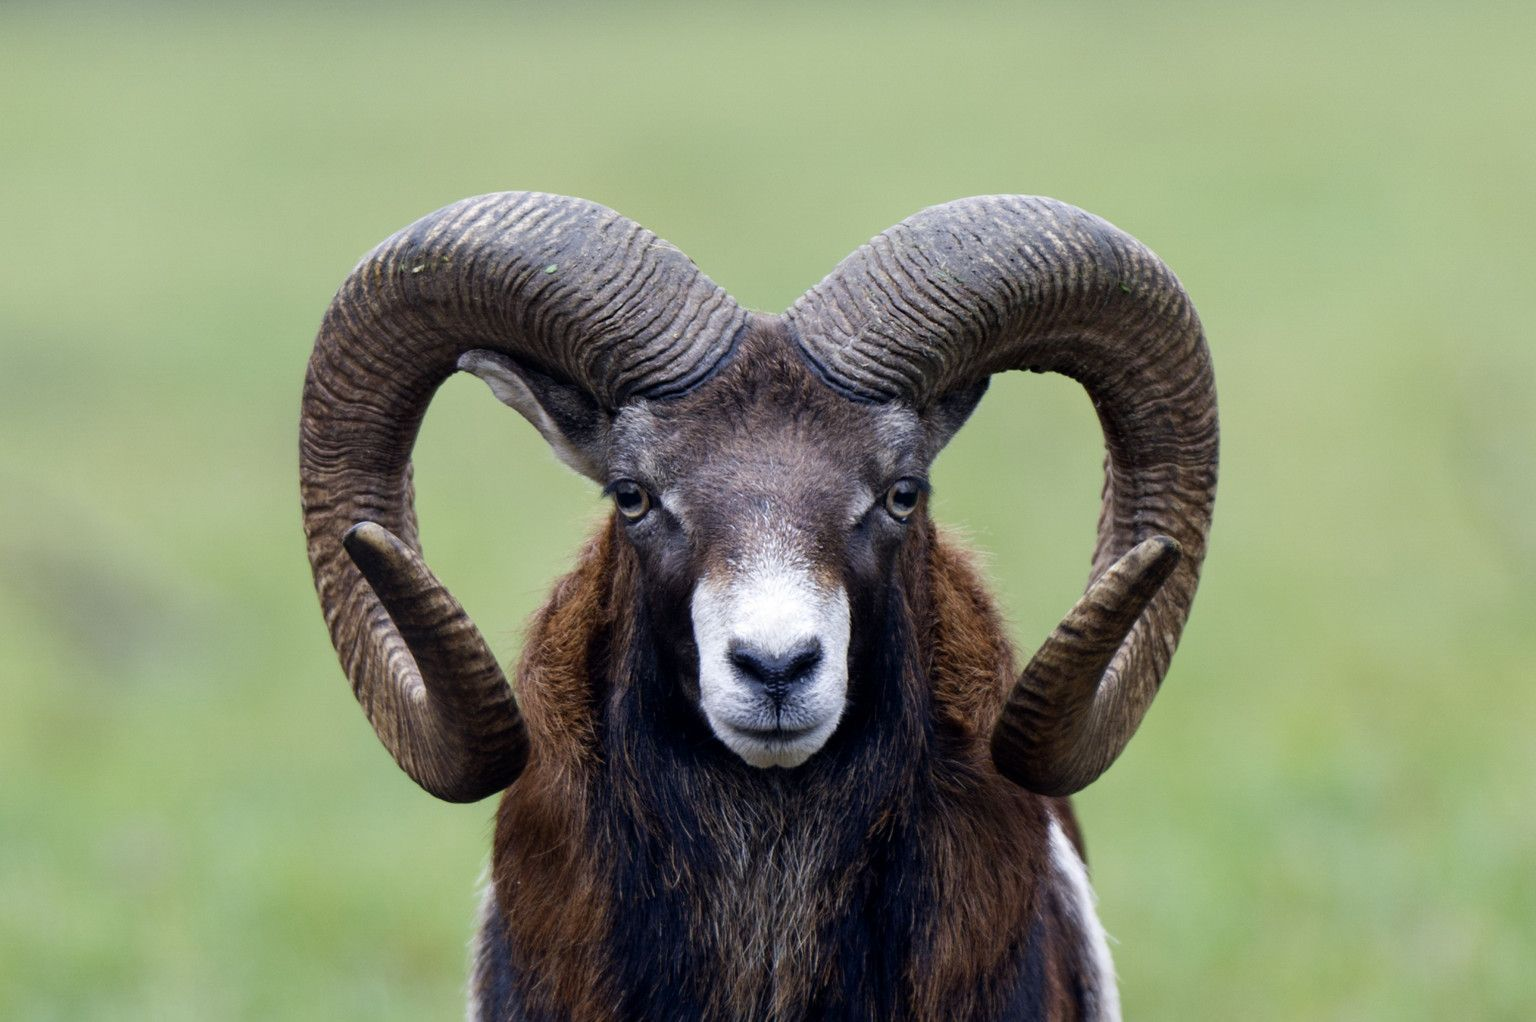 Rams Pay Big Price For Having Big Horns, Study Shows